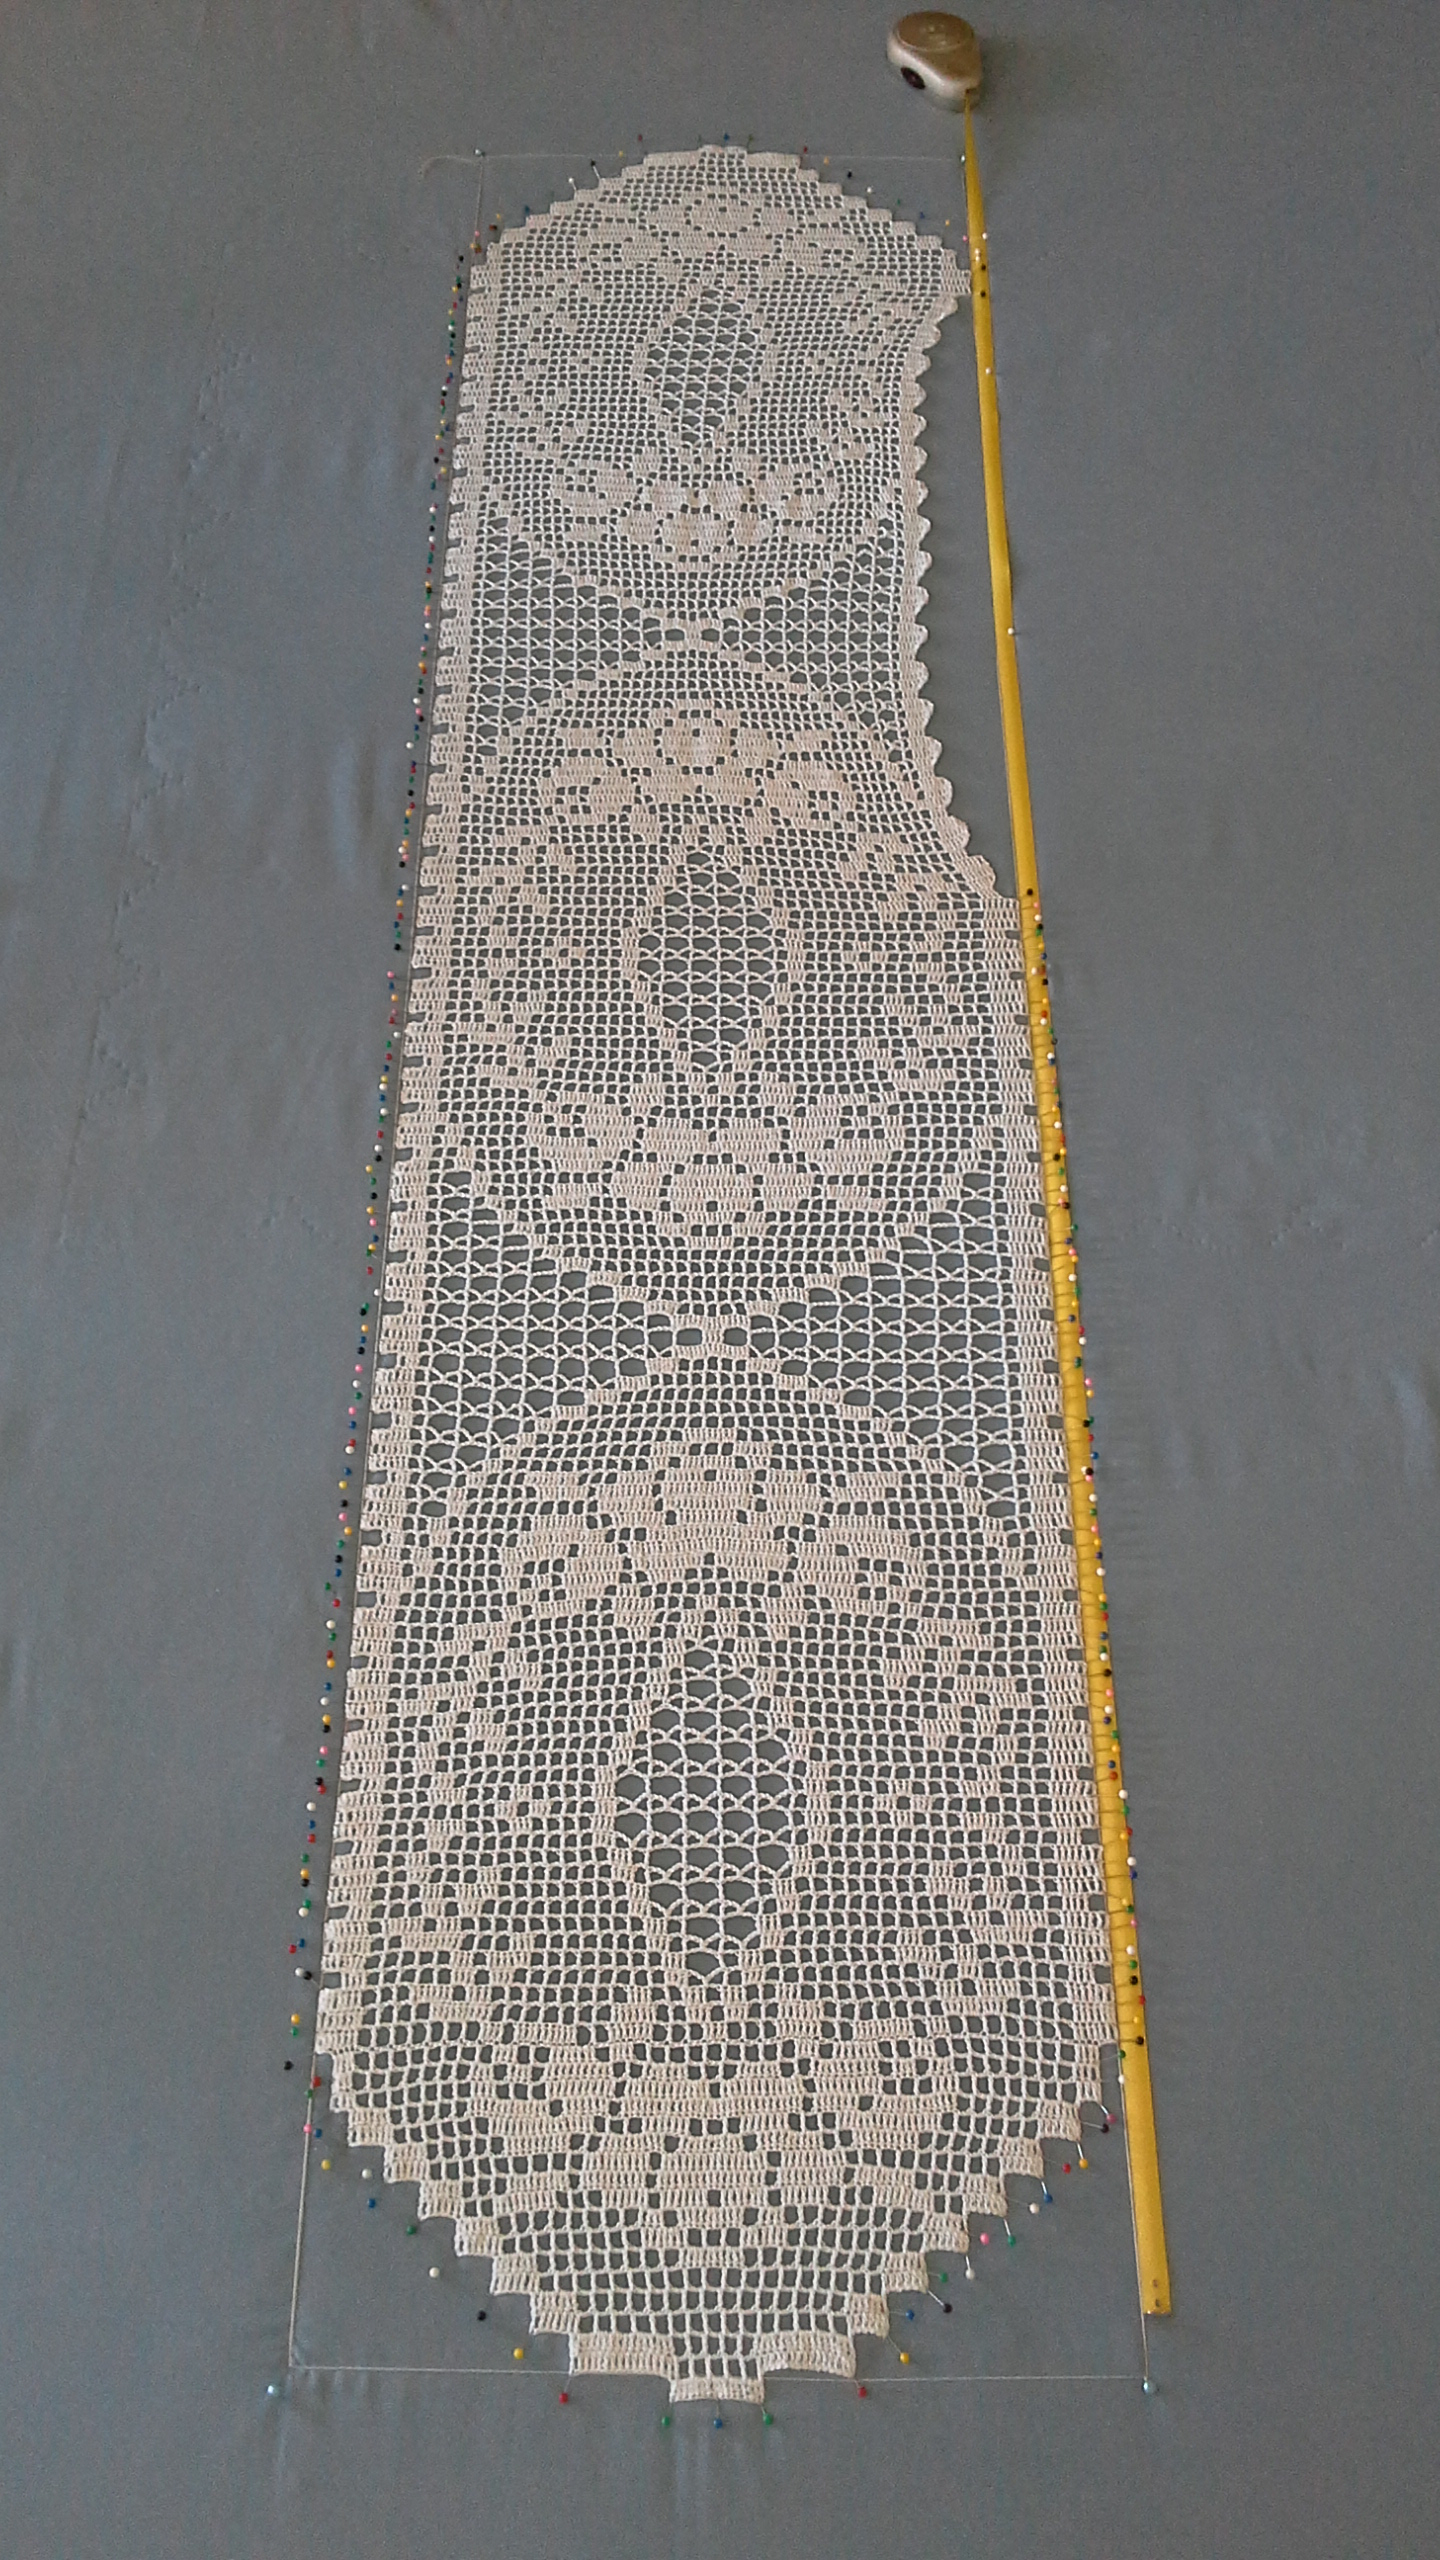 Crochet Patterns Lace Table Runners : Heirloom Quality Crochet Lacework ~ Lace Table Runner with ...